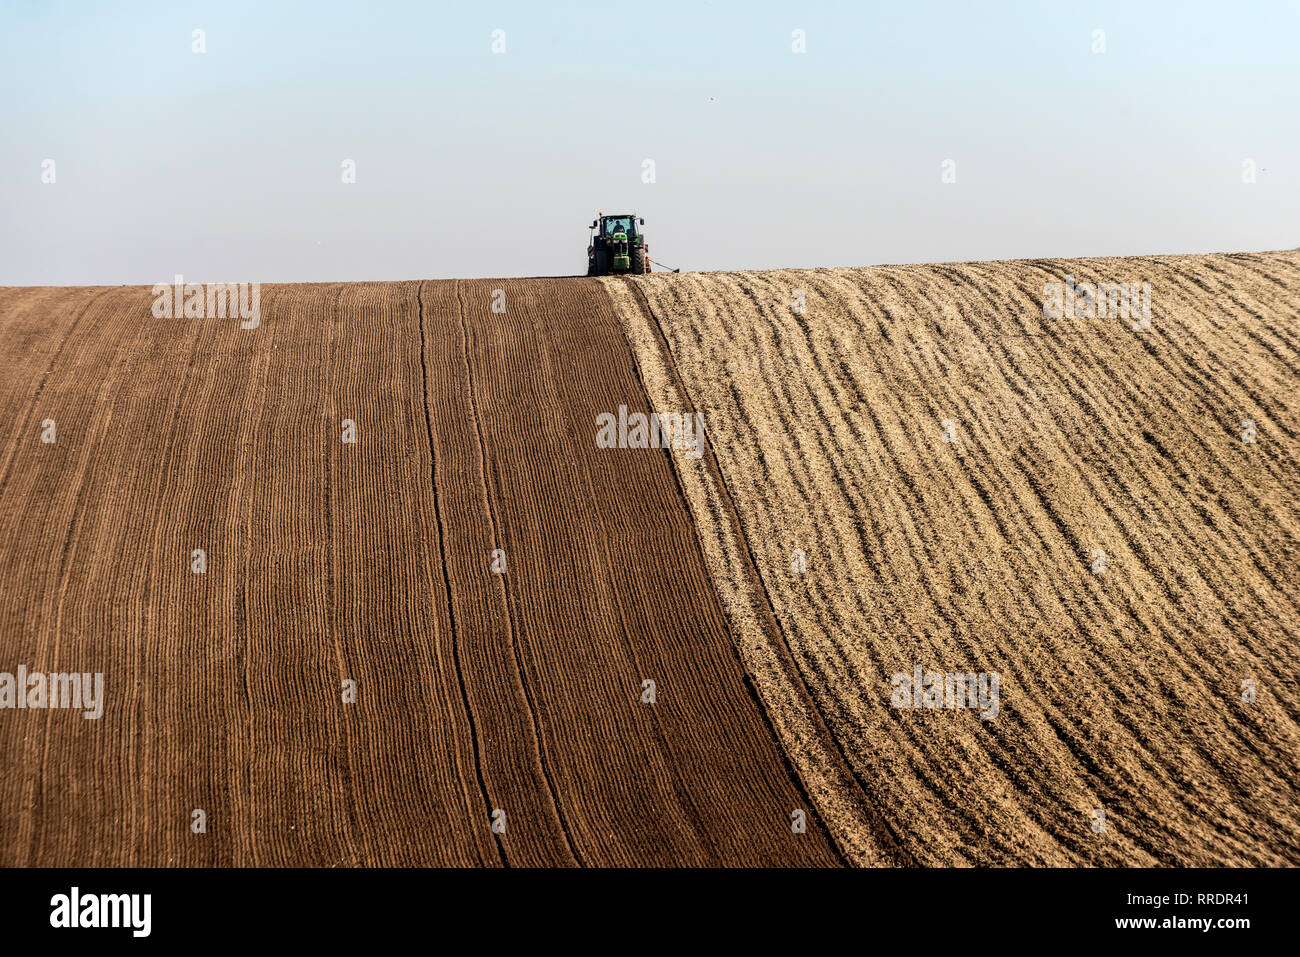 BRIGHTON, ENGLAND - FEBRUARY 25: A farmer preparing his fields for the spring at Falmer, near Brighton, England. (Photo by Andrew Hasson/Getty Images) - Stock Image